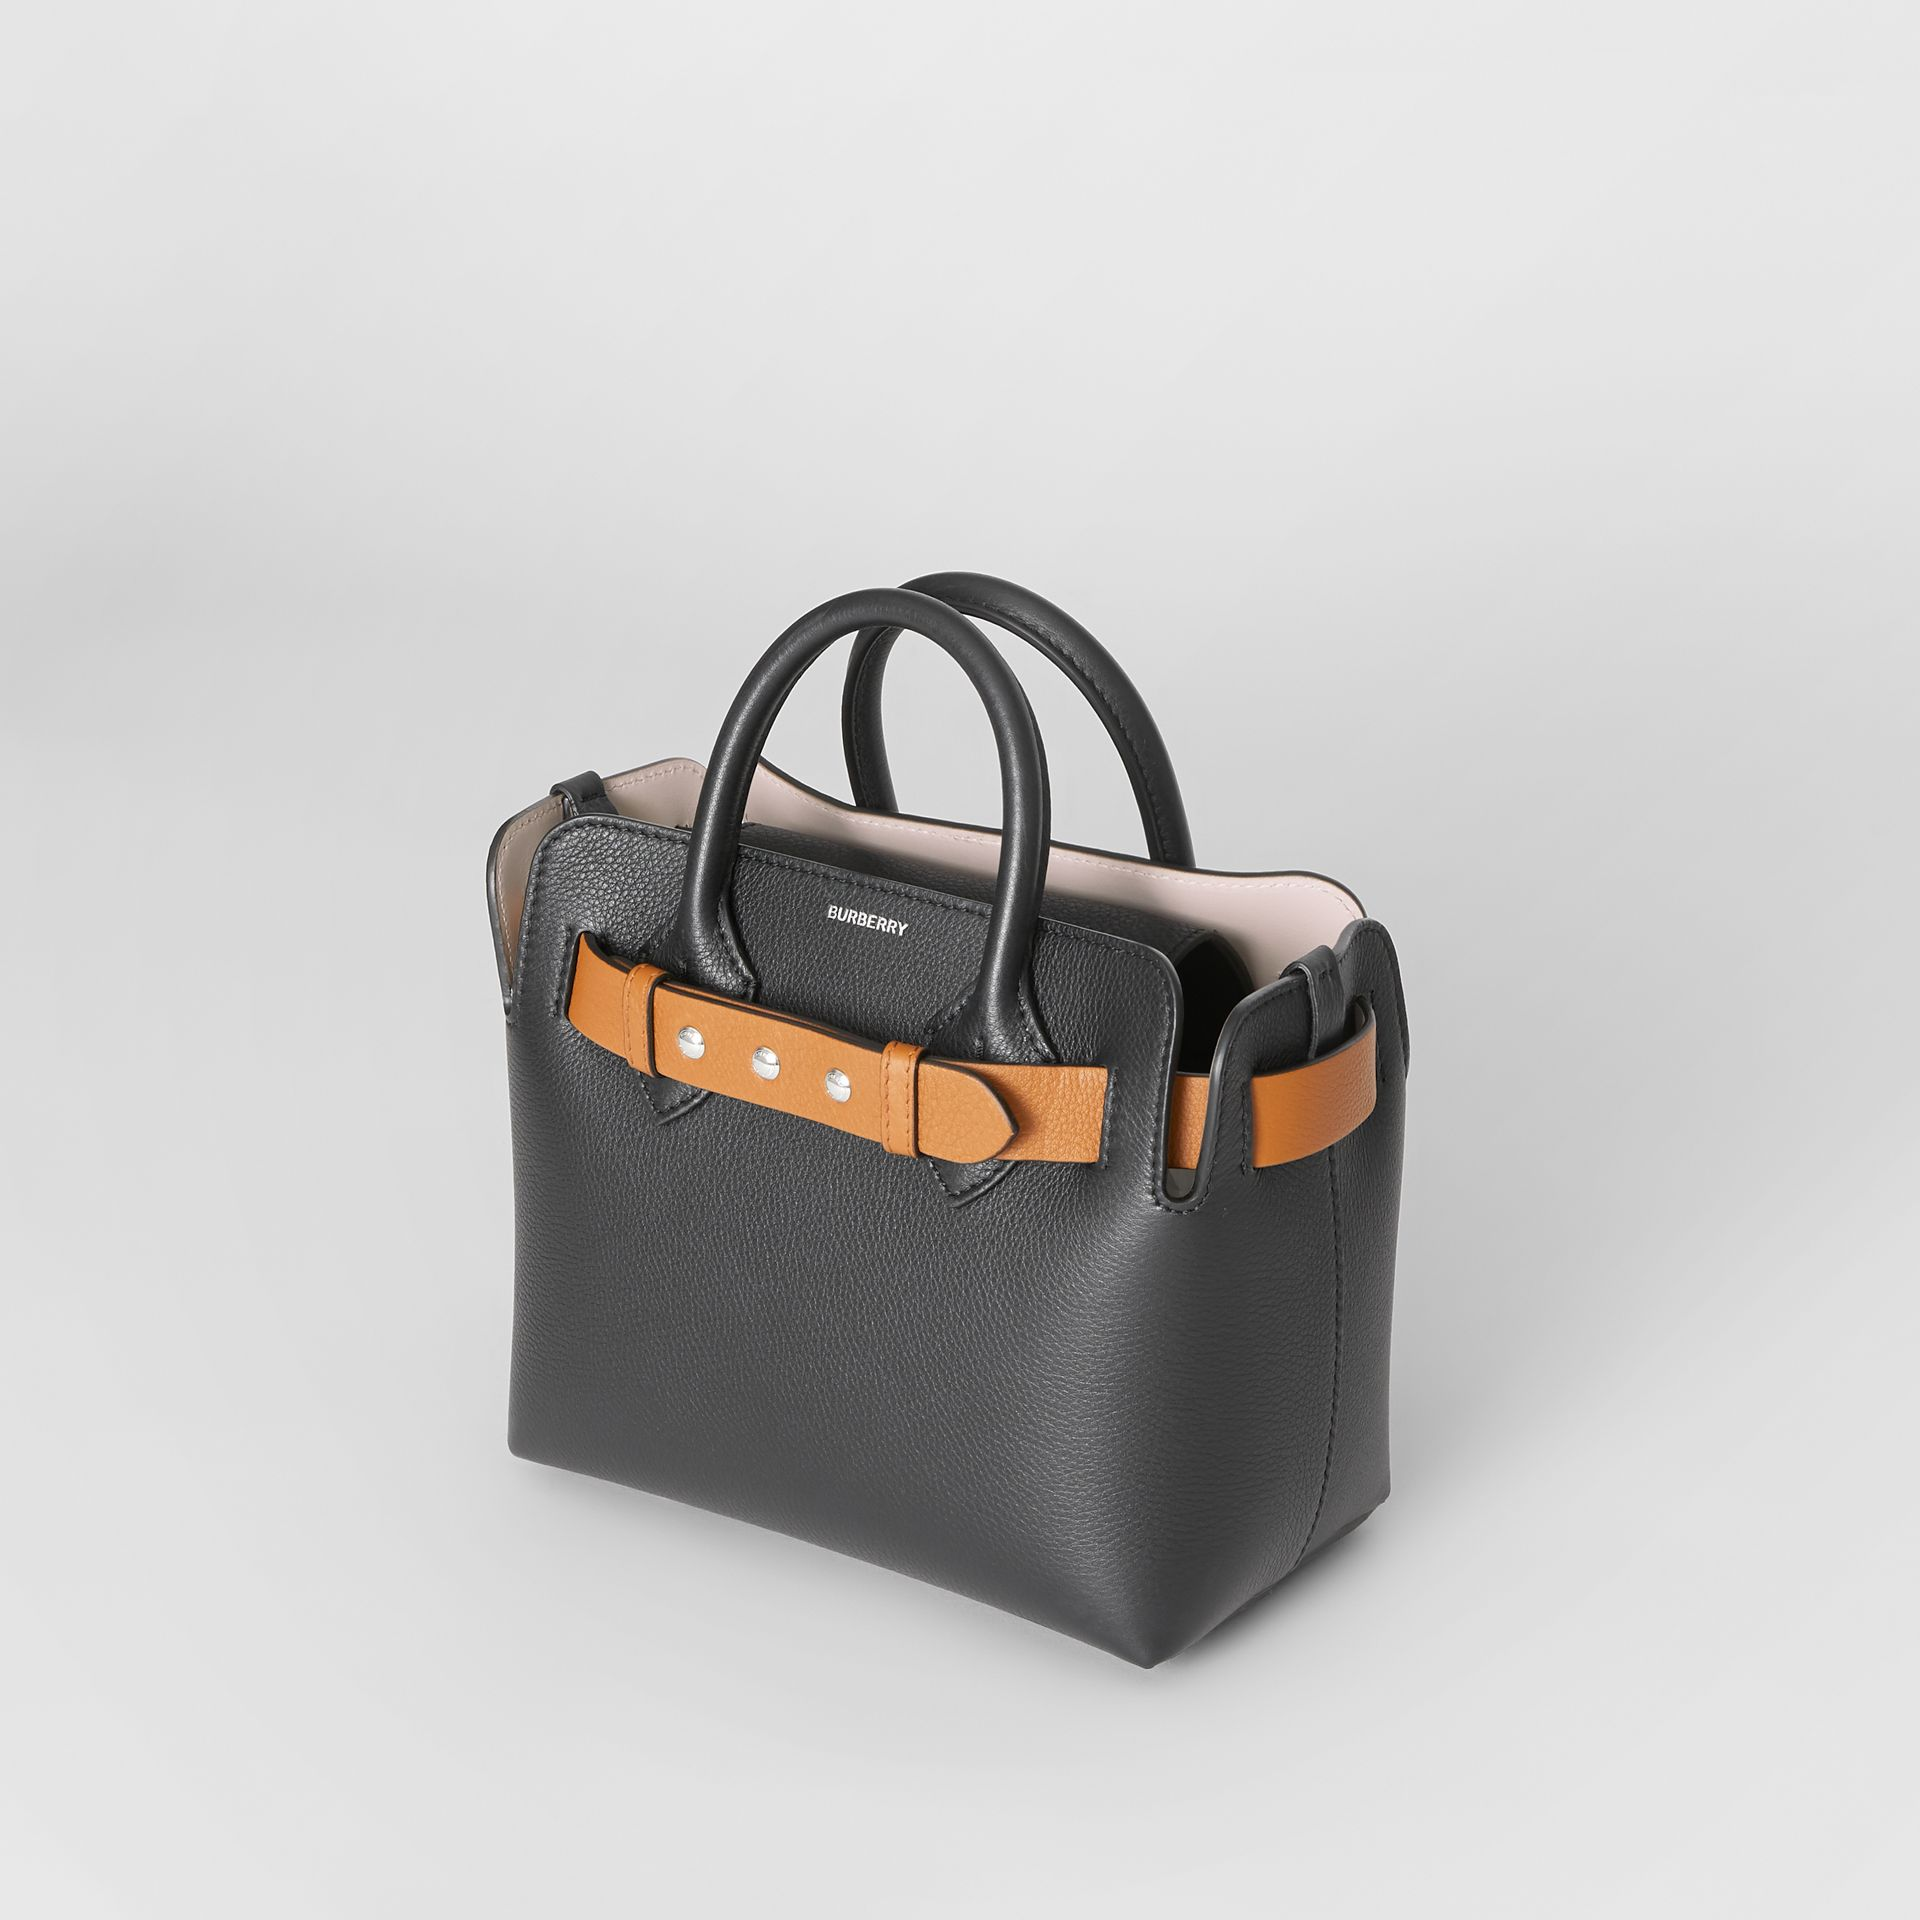 Borsa The Belt mini in pelle con tre borchie (Nero) - Donna | Burberry - immagine della galleria 3